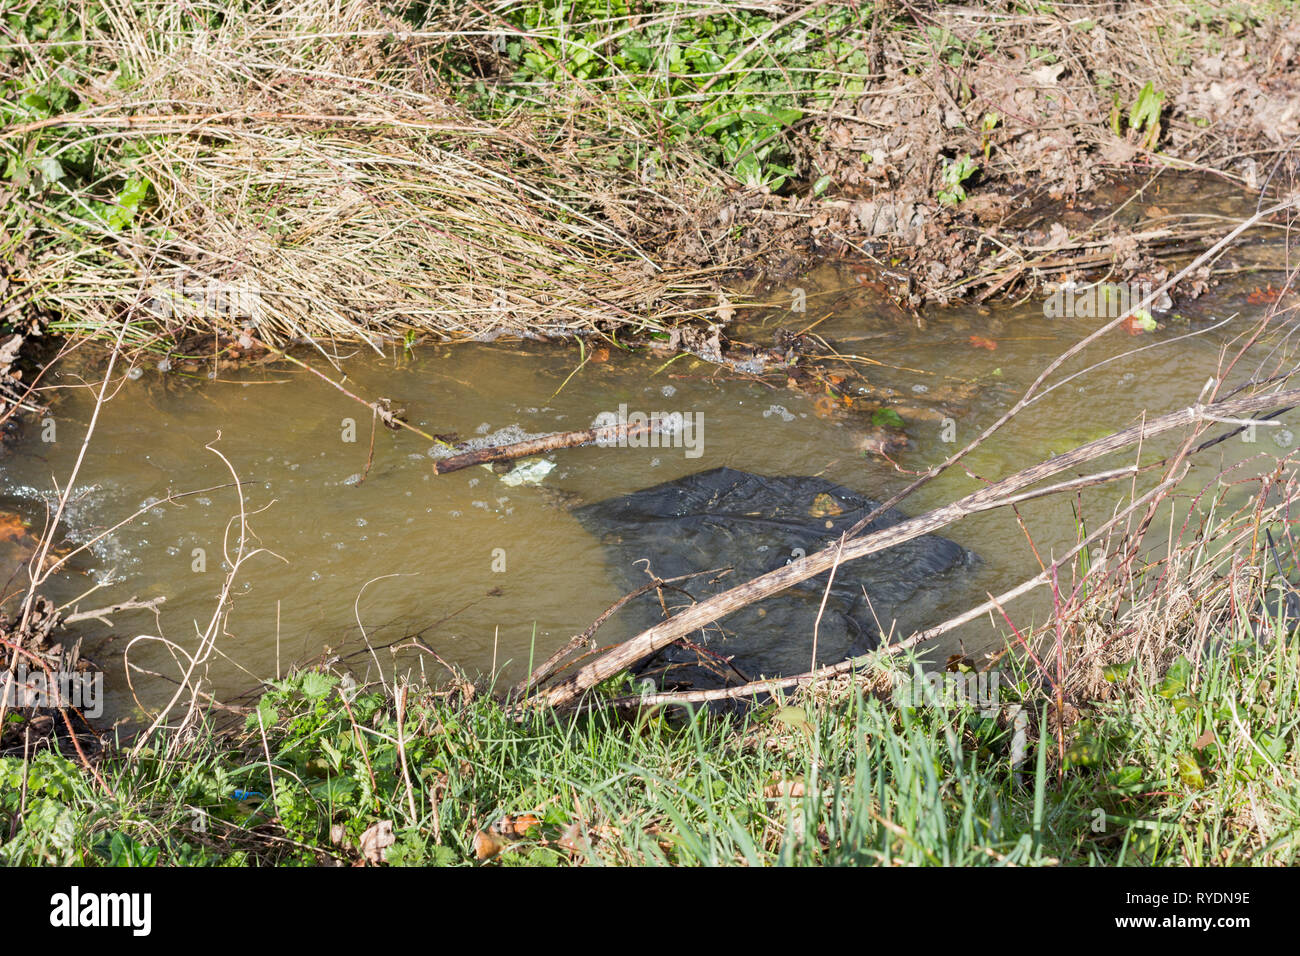 Plastic rubbish polluting a stream in an urban area,  Dorset, UK - Stock Image